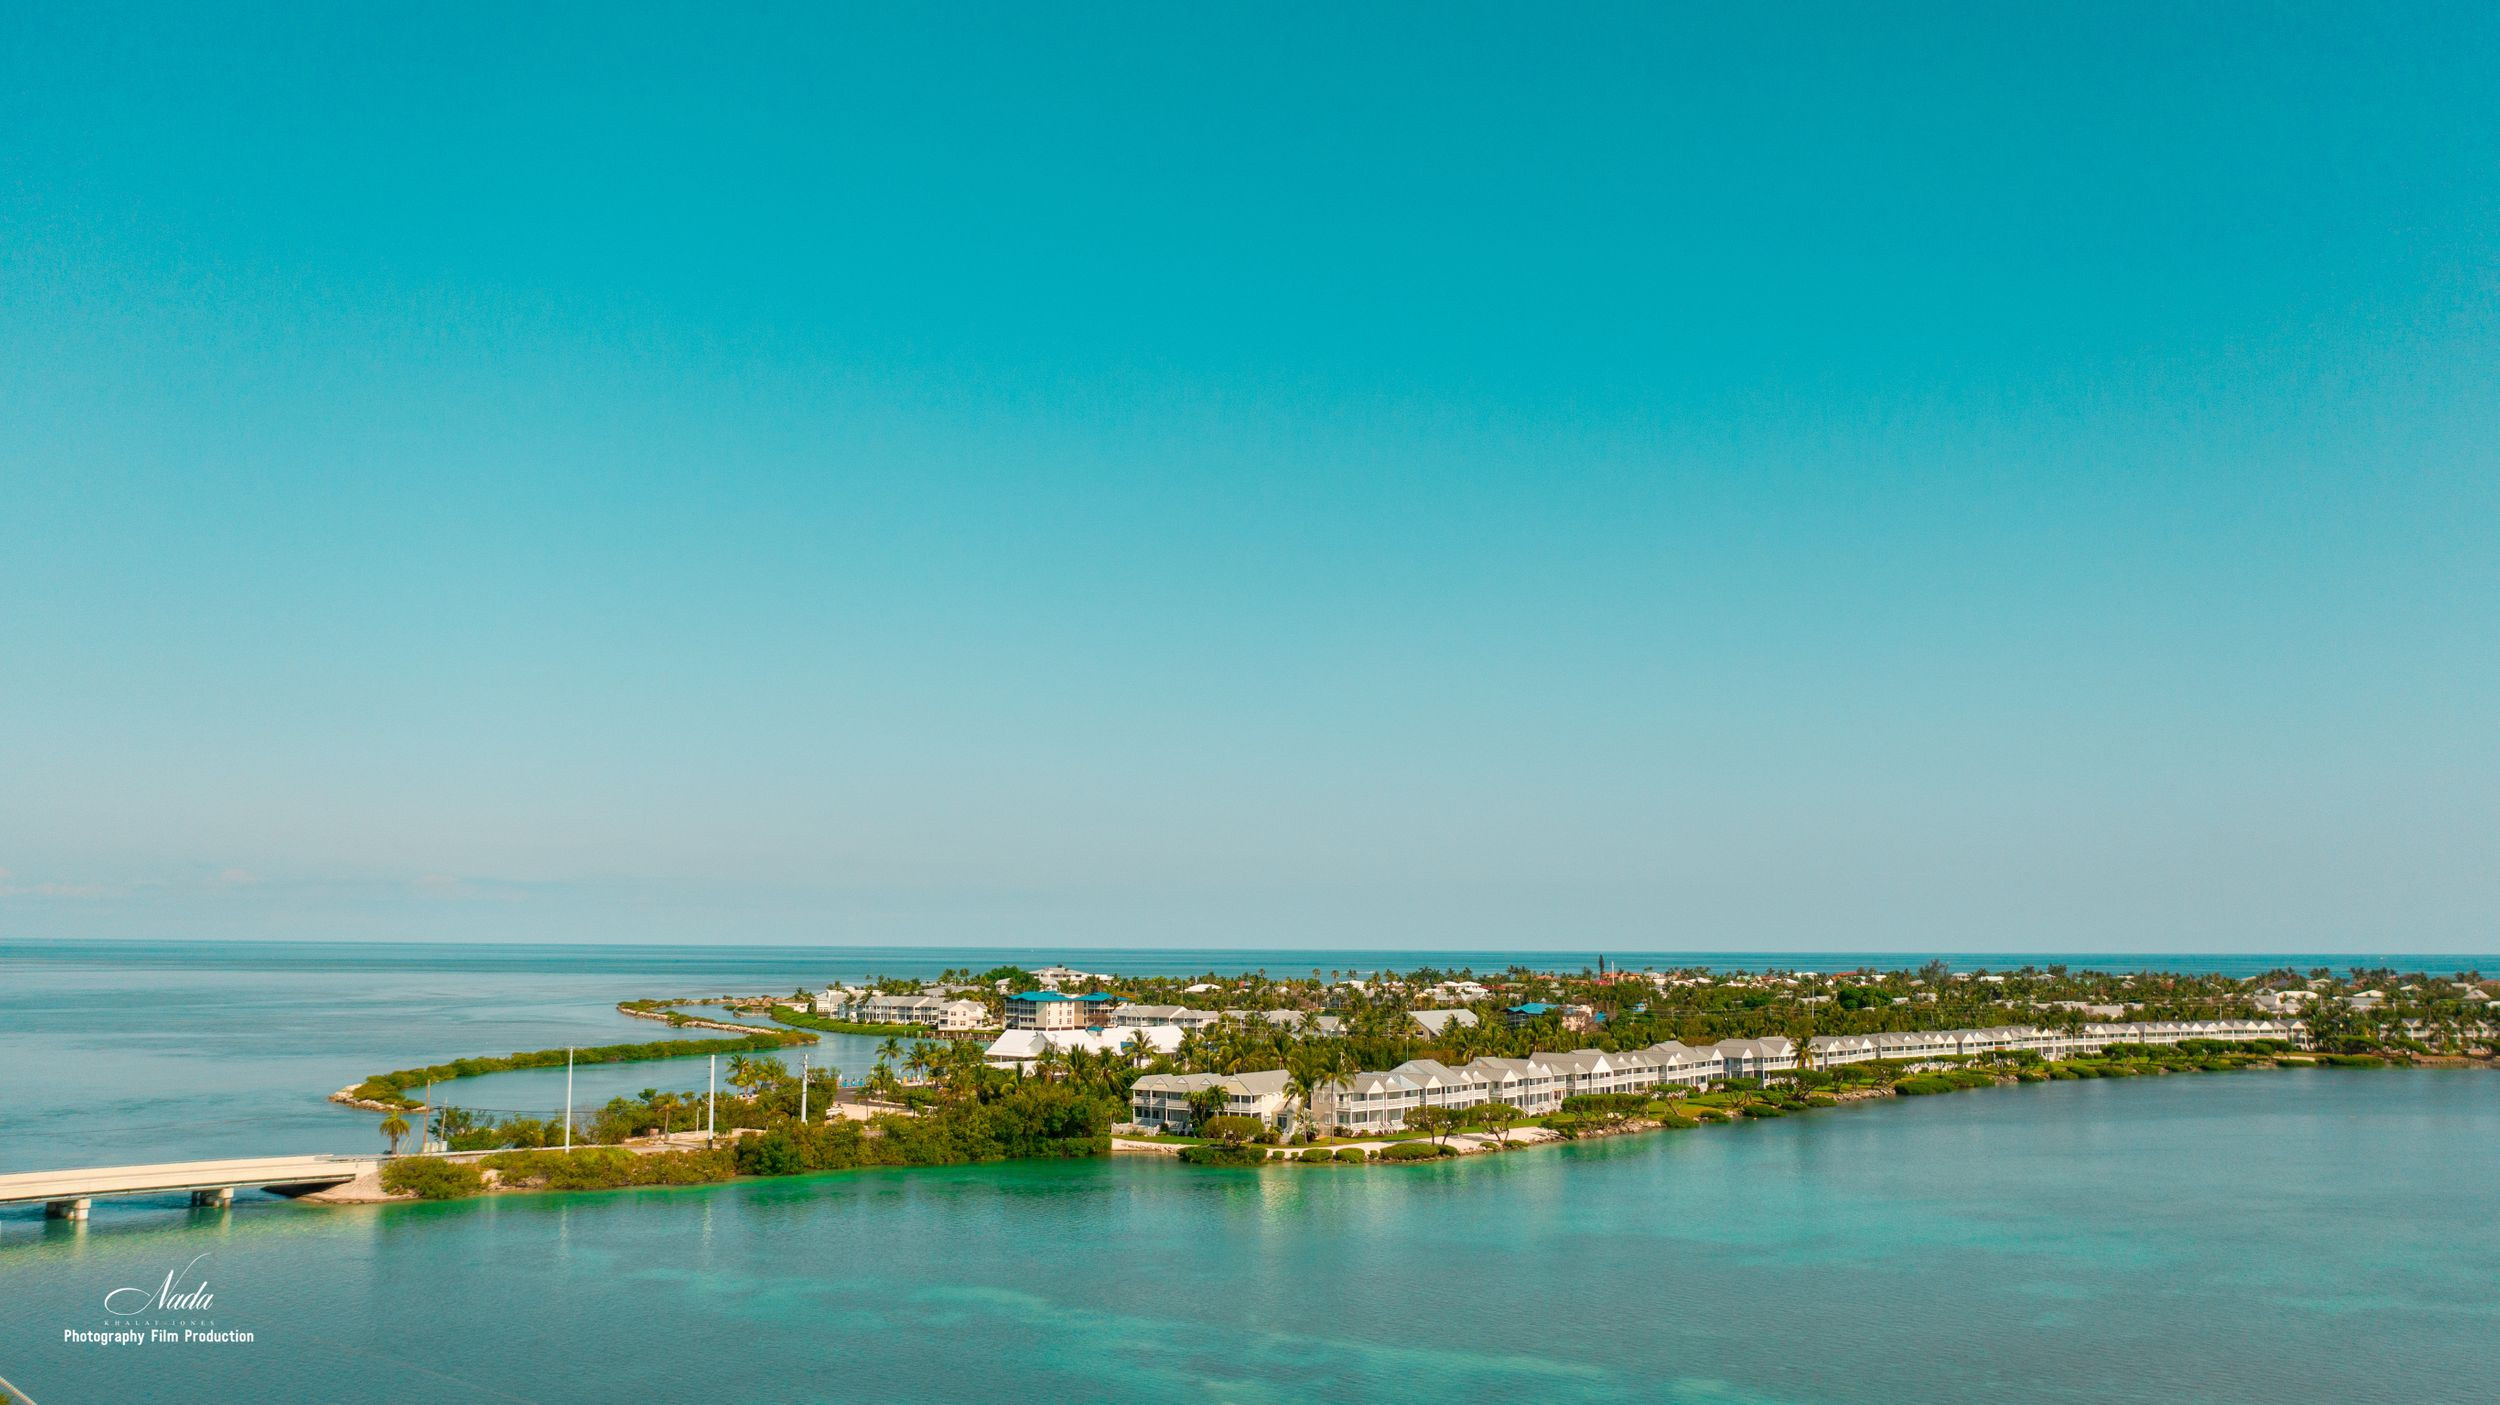 Florida Keys drone photography